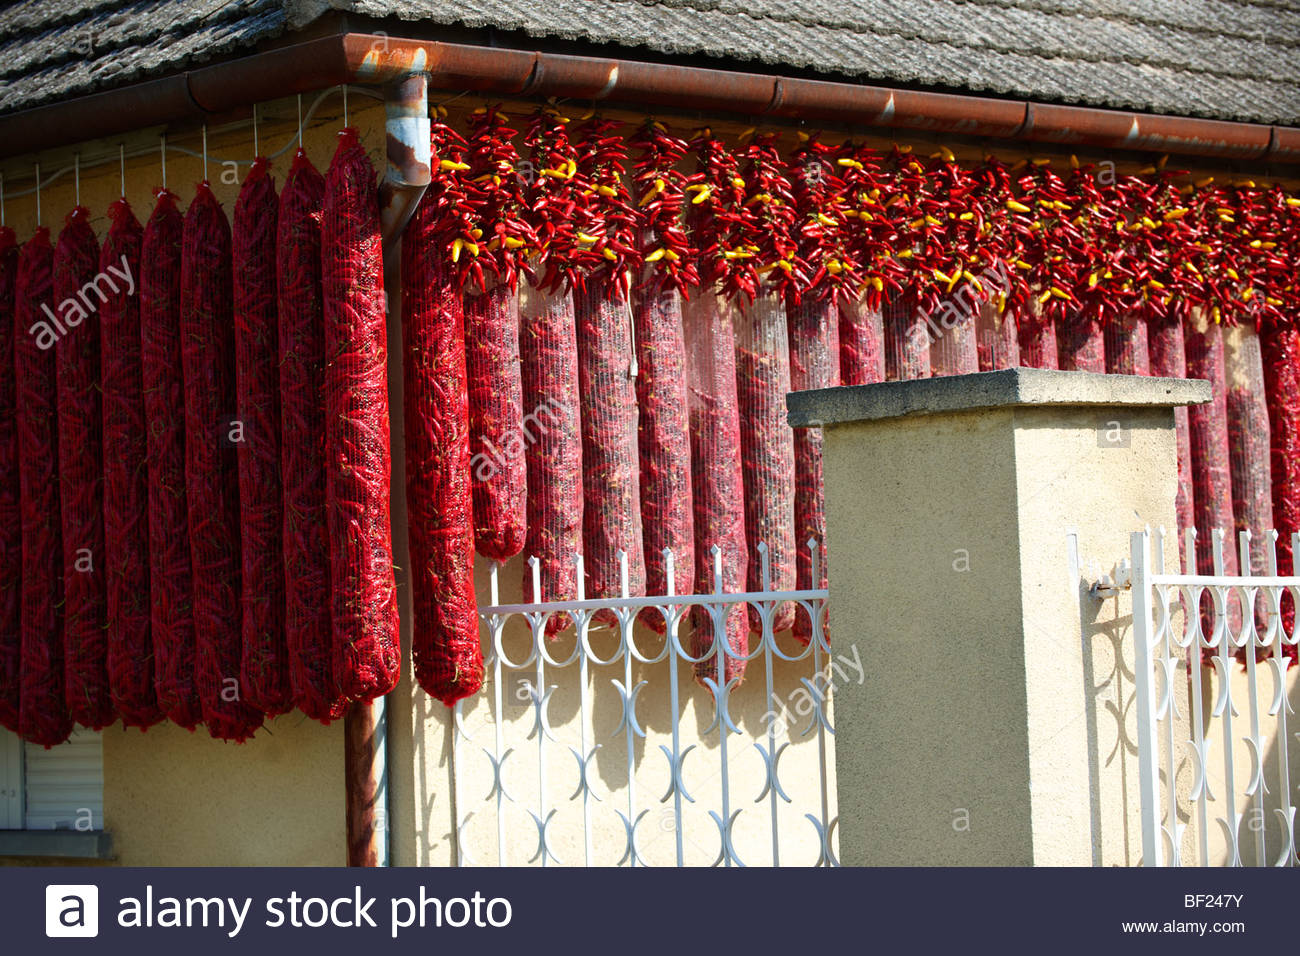 Capsicum annuum or chili peppers drying to make Hungarian paprika - Kalocsa Hungary - Stock Image